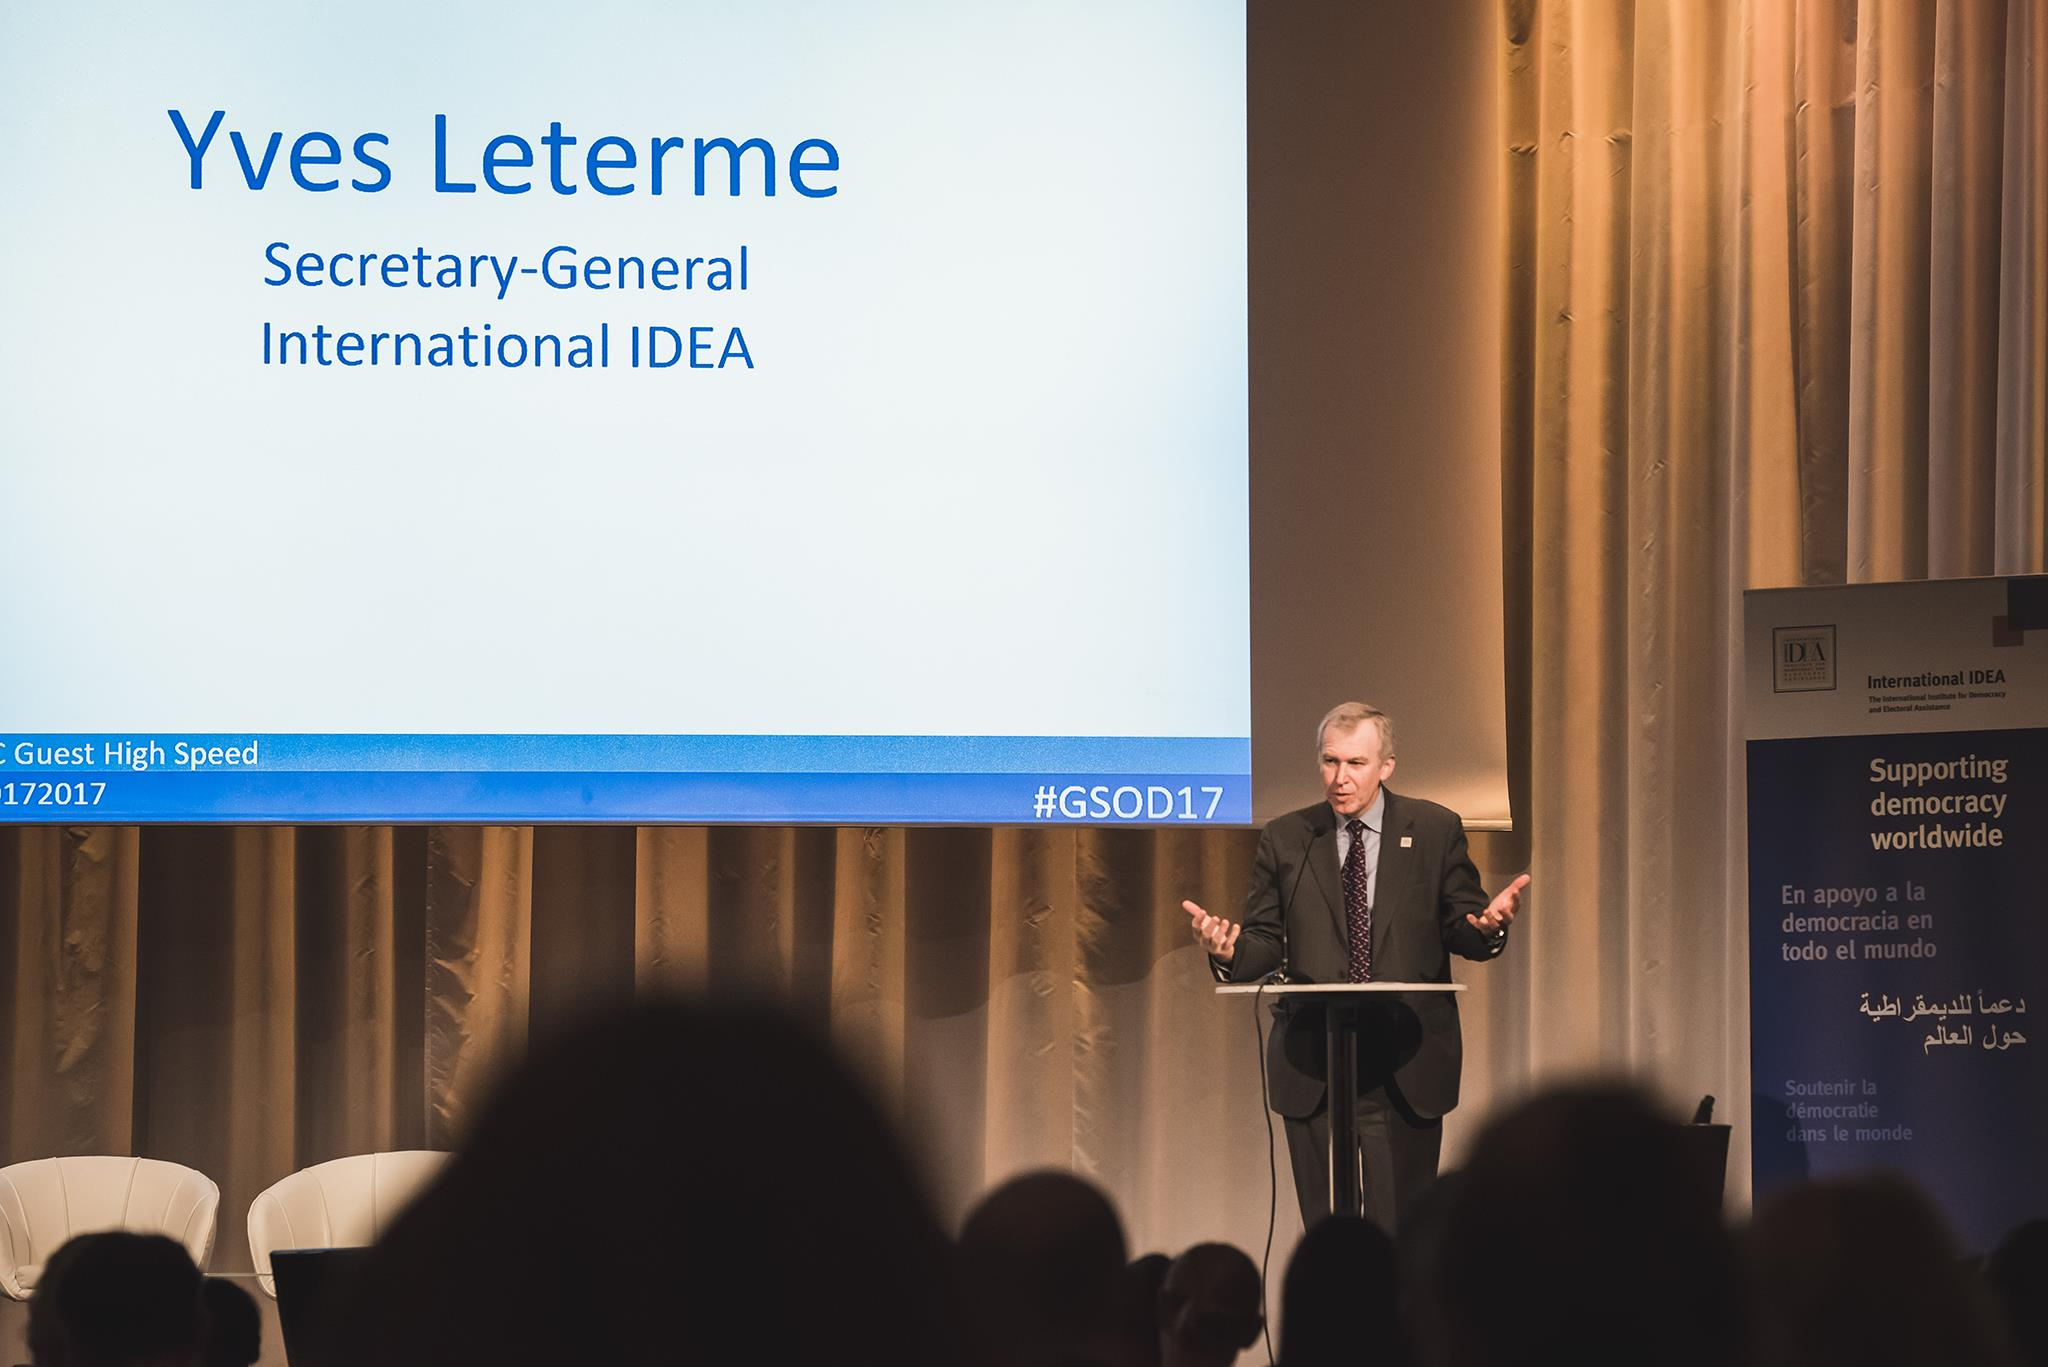 Secretary-General Yves Leterme at The Global State of Democracy launch, Stockholm, 15 November 2017. Image: Stuudio Huusmann